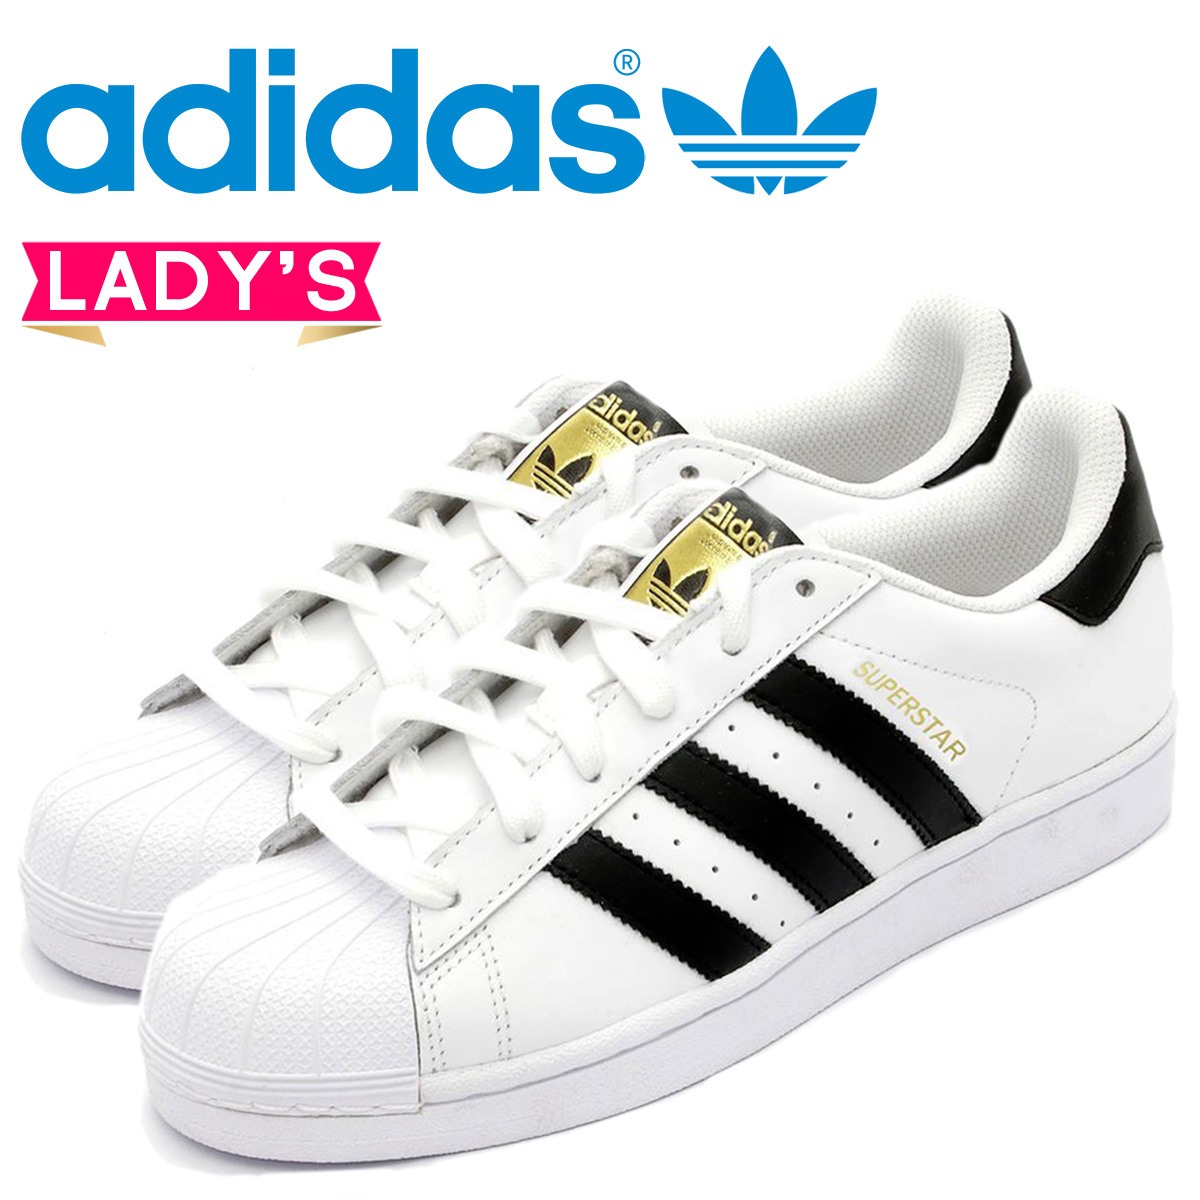 ... \u0026laquo;29 / 6 days stock\u0026raquo; adidas originals adidas Originals  Womens SUPERSTAR J sneakers superstar J girls leather kids \u0027 Junior kids  GIRLS C77154 ...